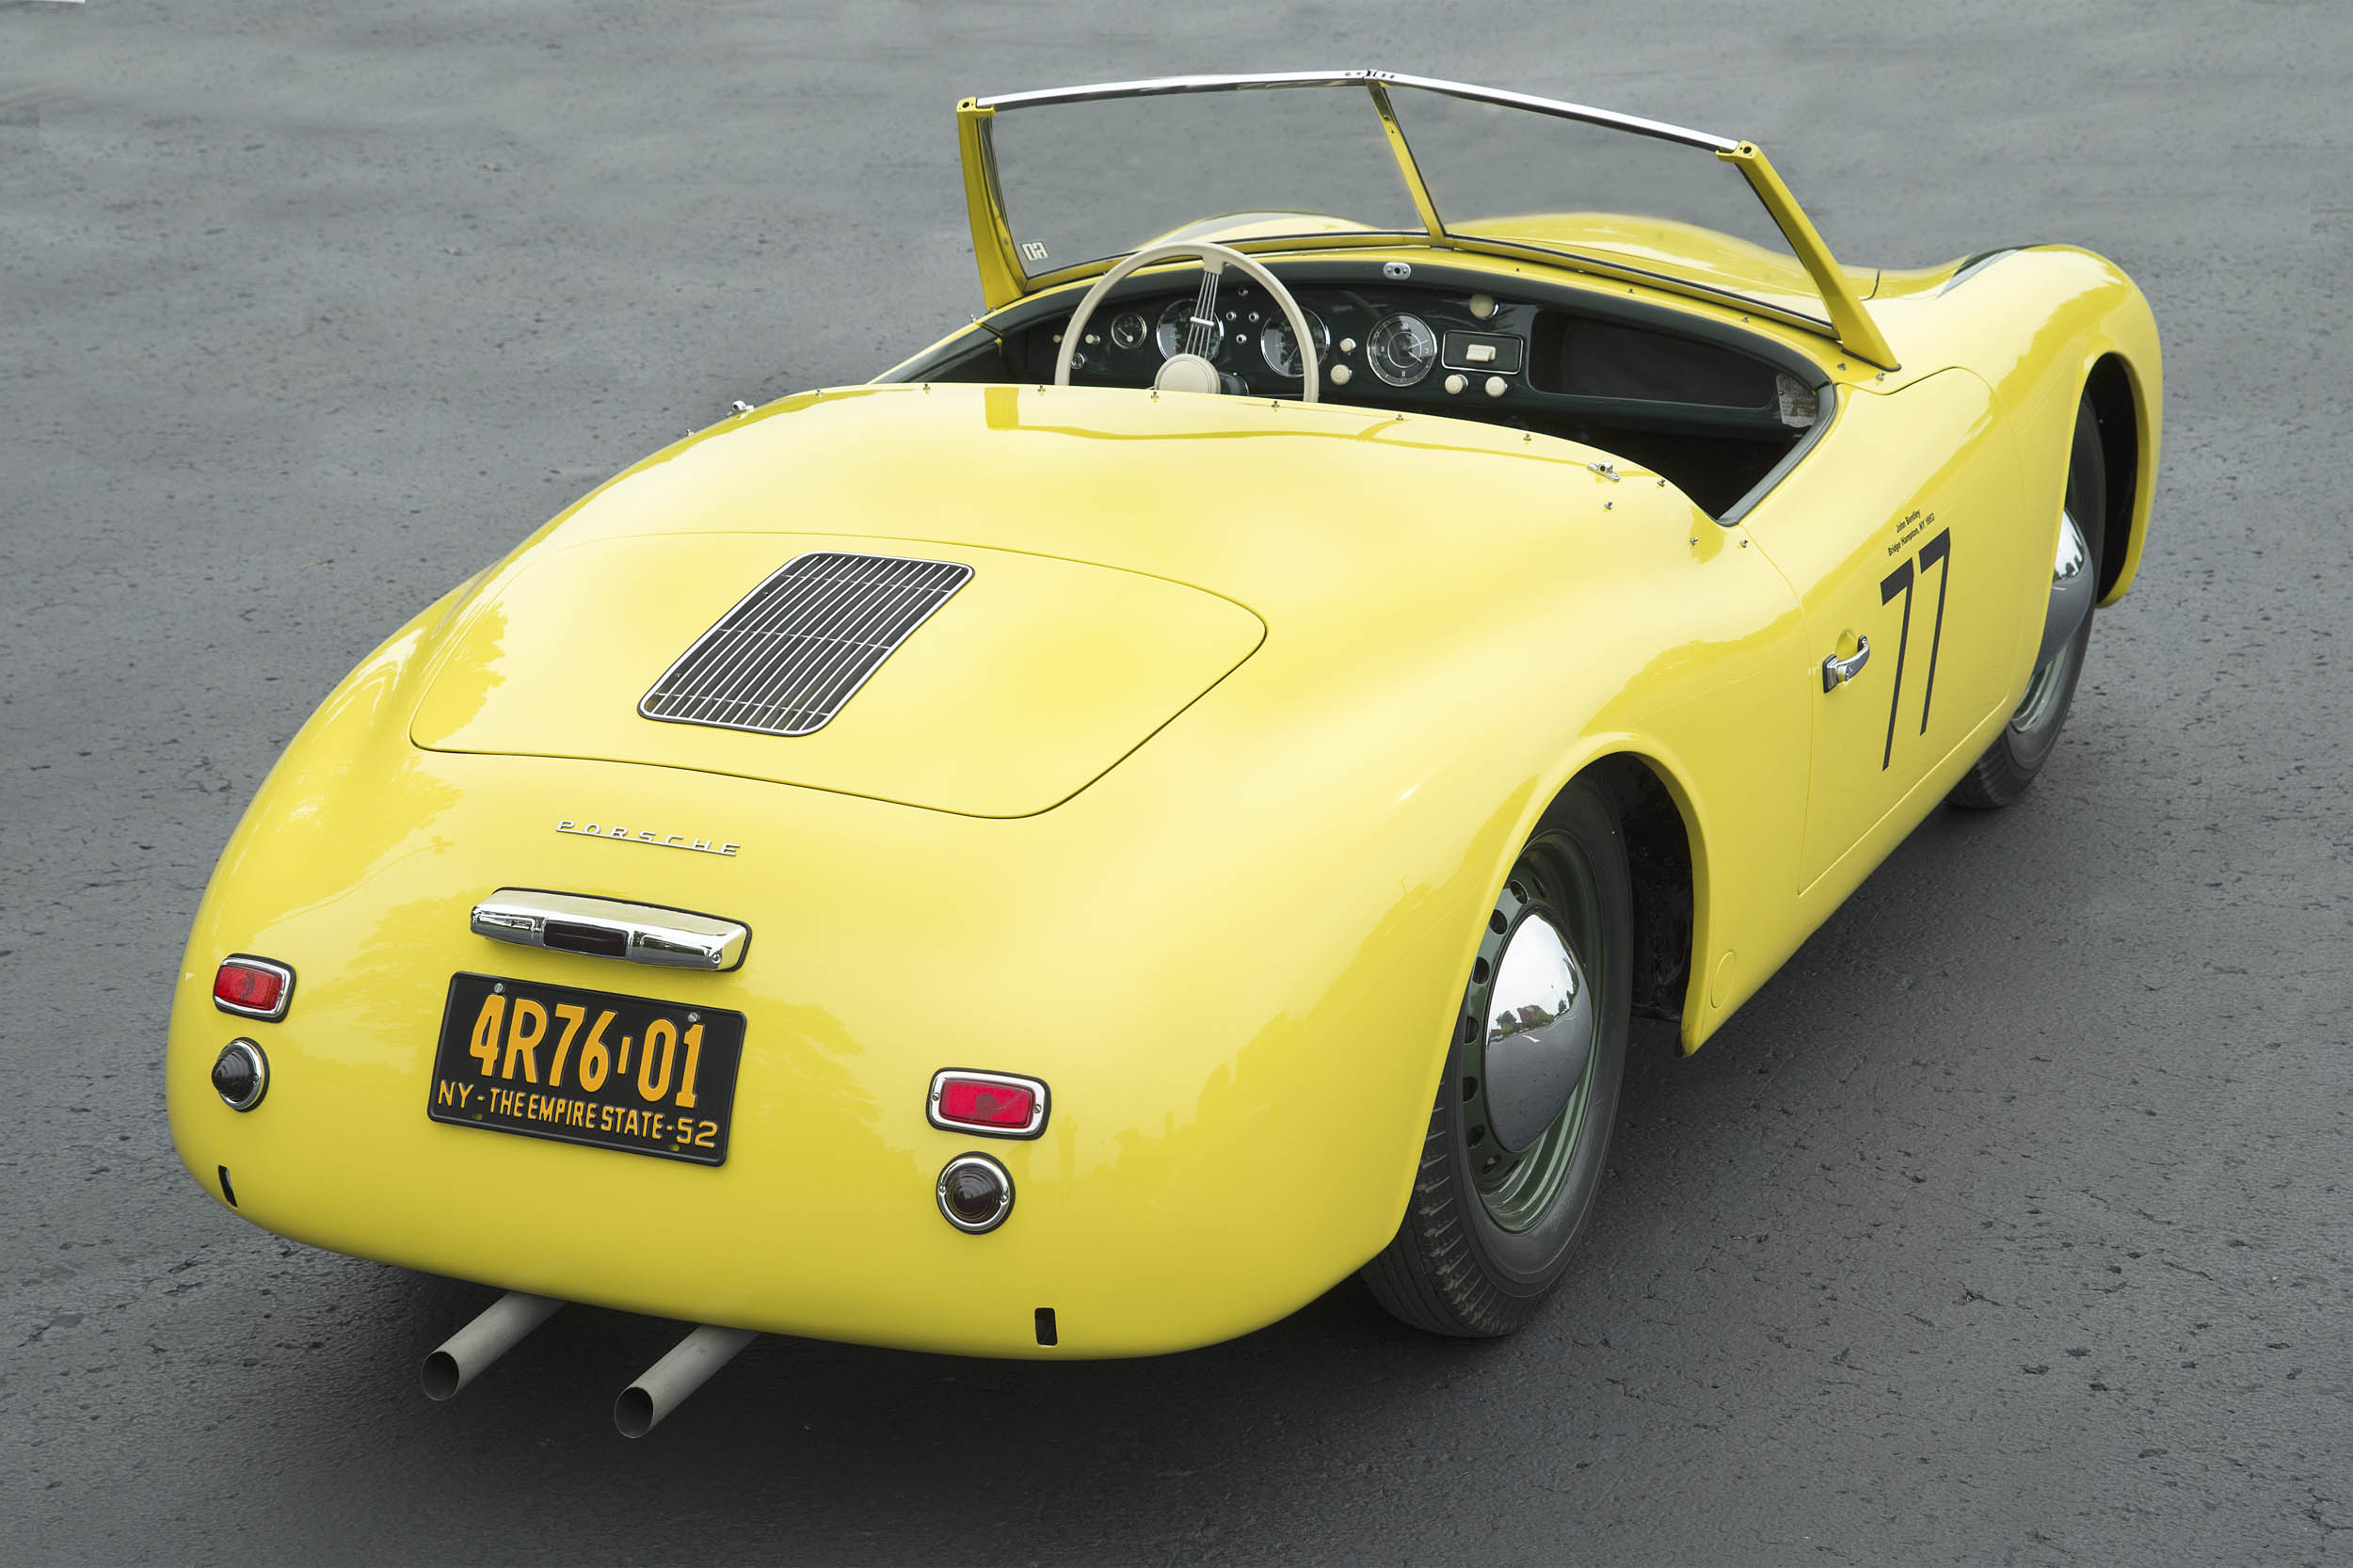 The Porsche's gentle curves are as beautiful today as they were 66 years ago.